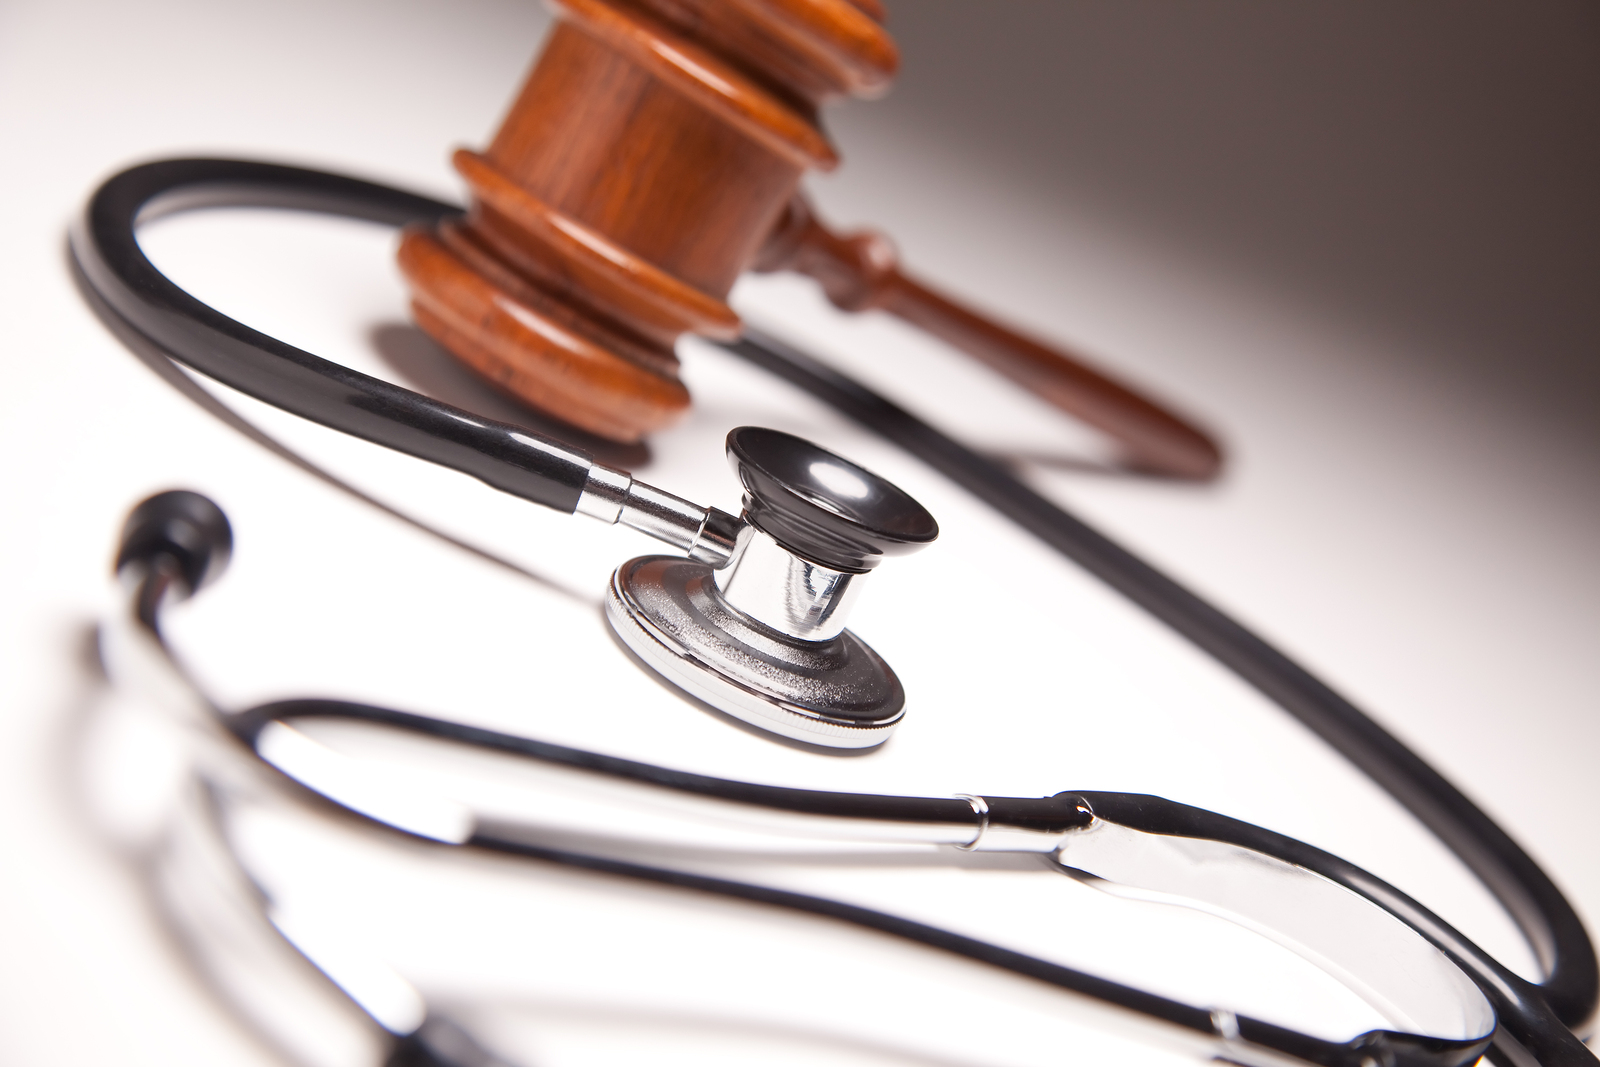 What You Need To Know About Spinal Injury Lawsuits